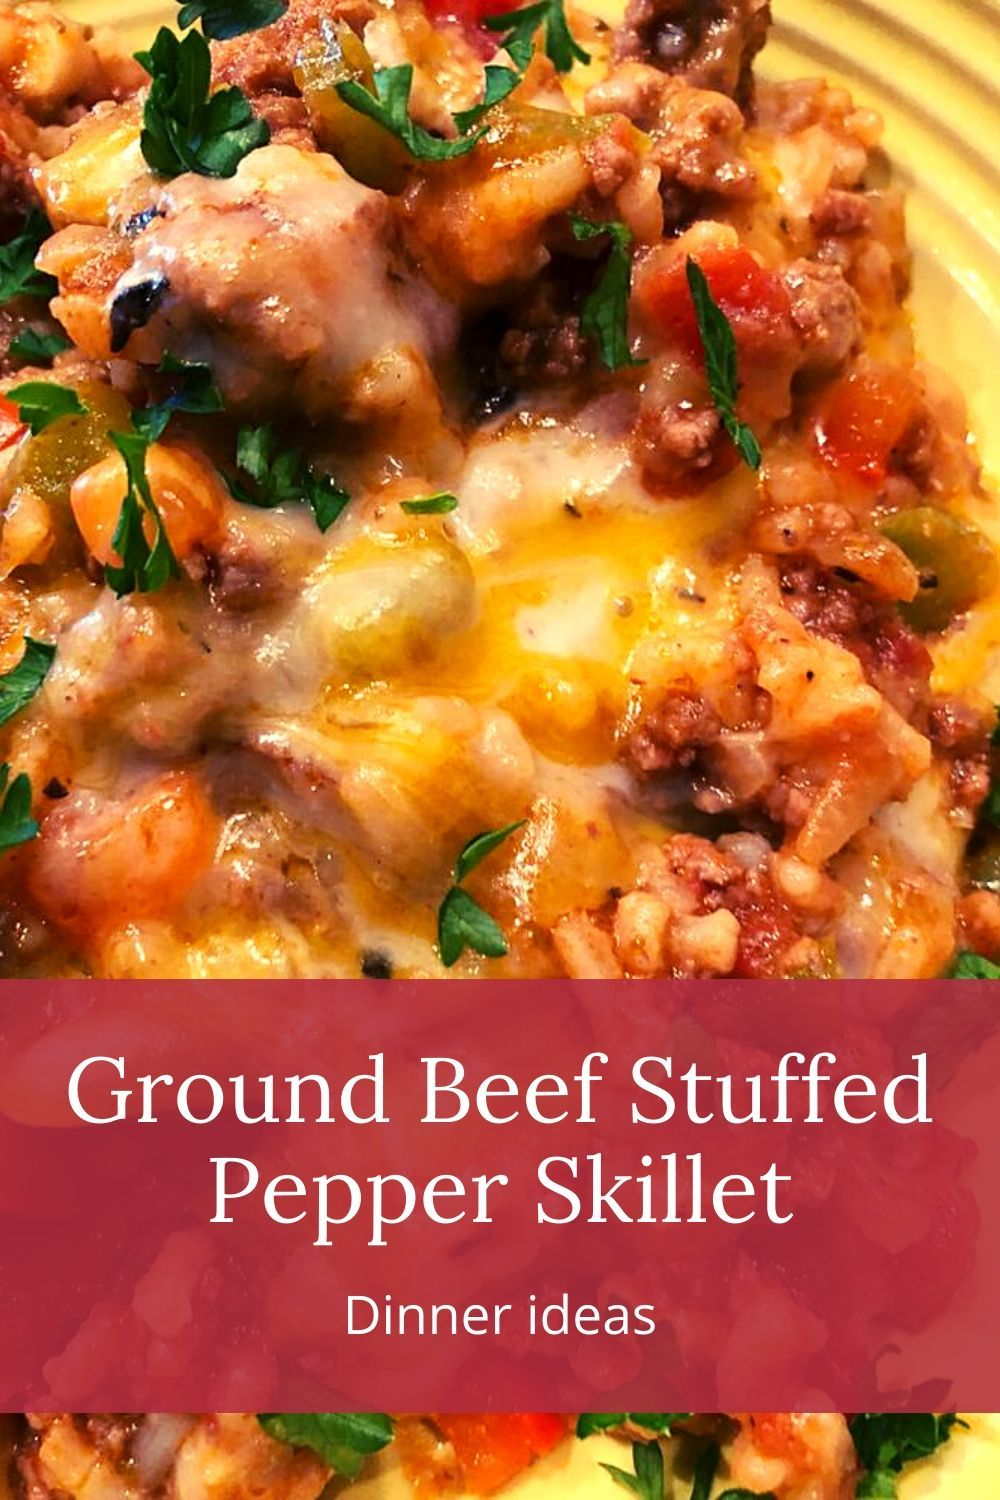 Ground Beef And Rice Ground Beef Stir Fry Ground Beef Mexican Recipes Ground Beef Slow Cooker Recipes In 2020 Beef Recipes Slow Cooker Stuffed Peppers Bbq Recipes